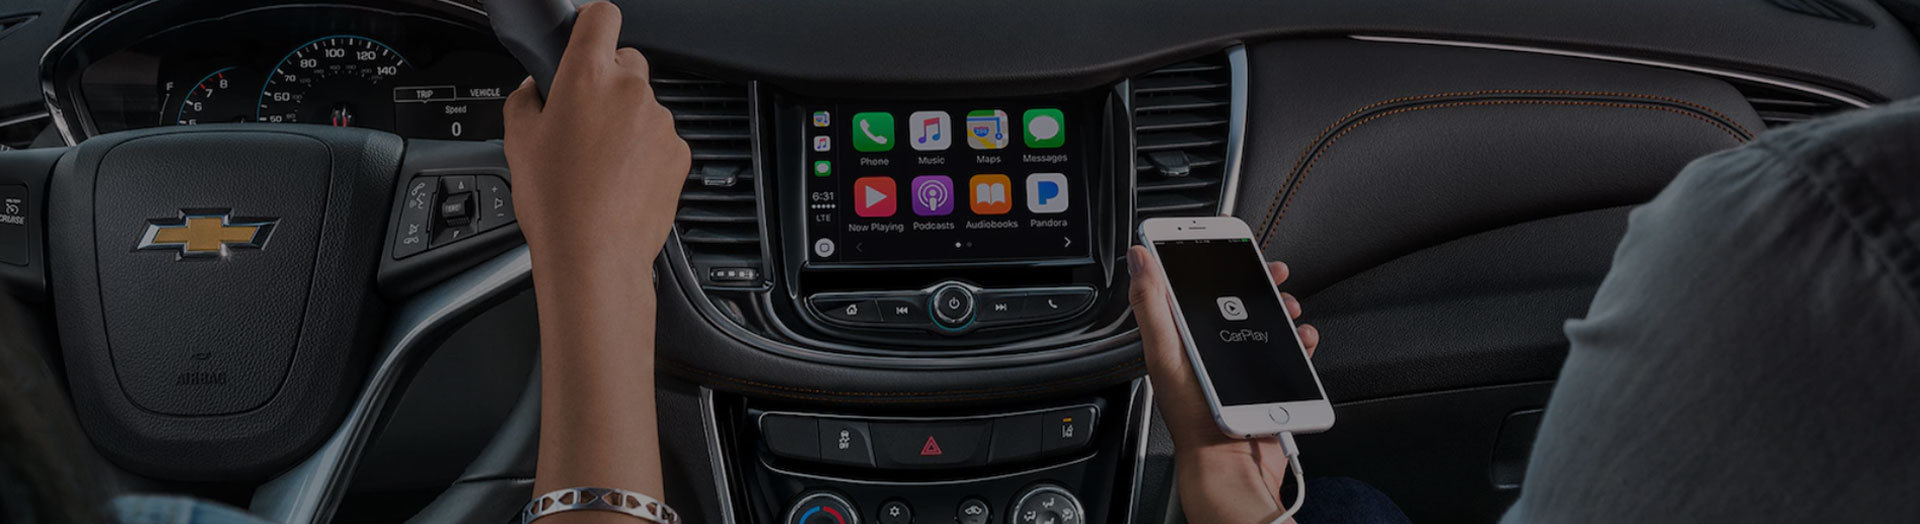 Smartphone Auto Integration Services | World Wide Stereo